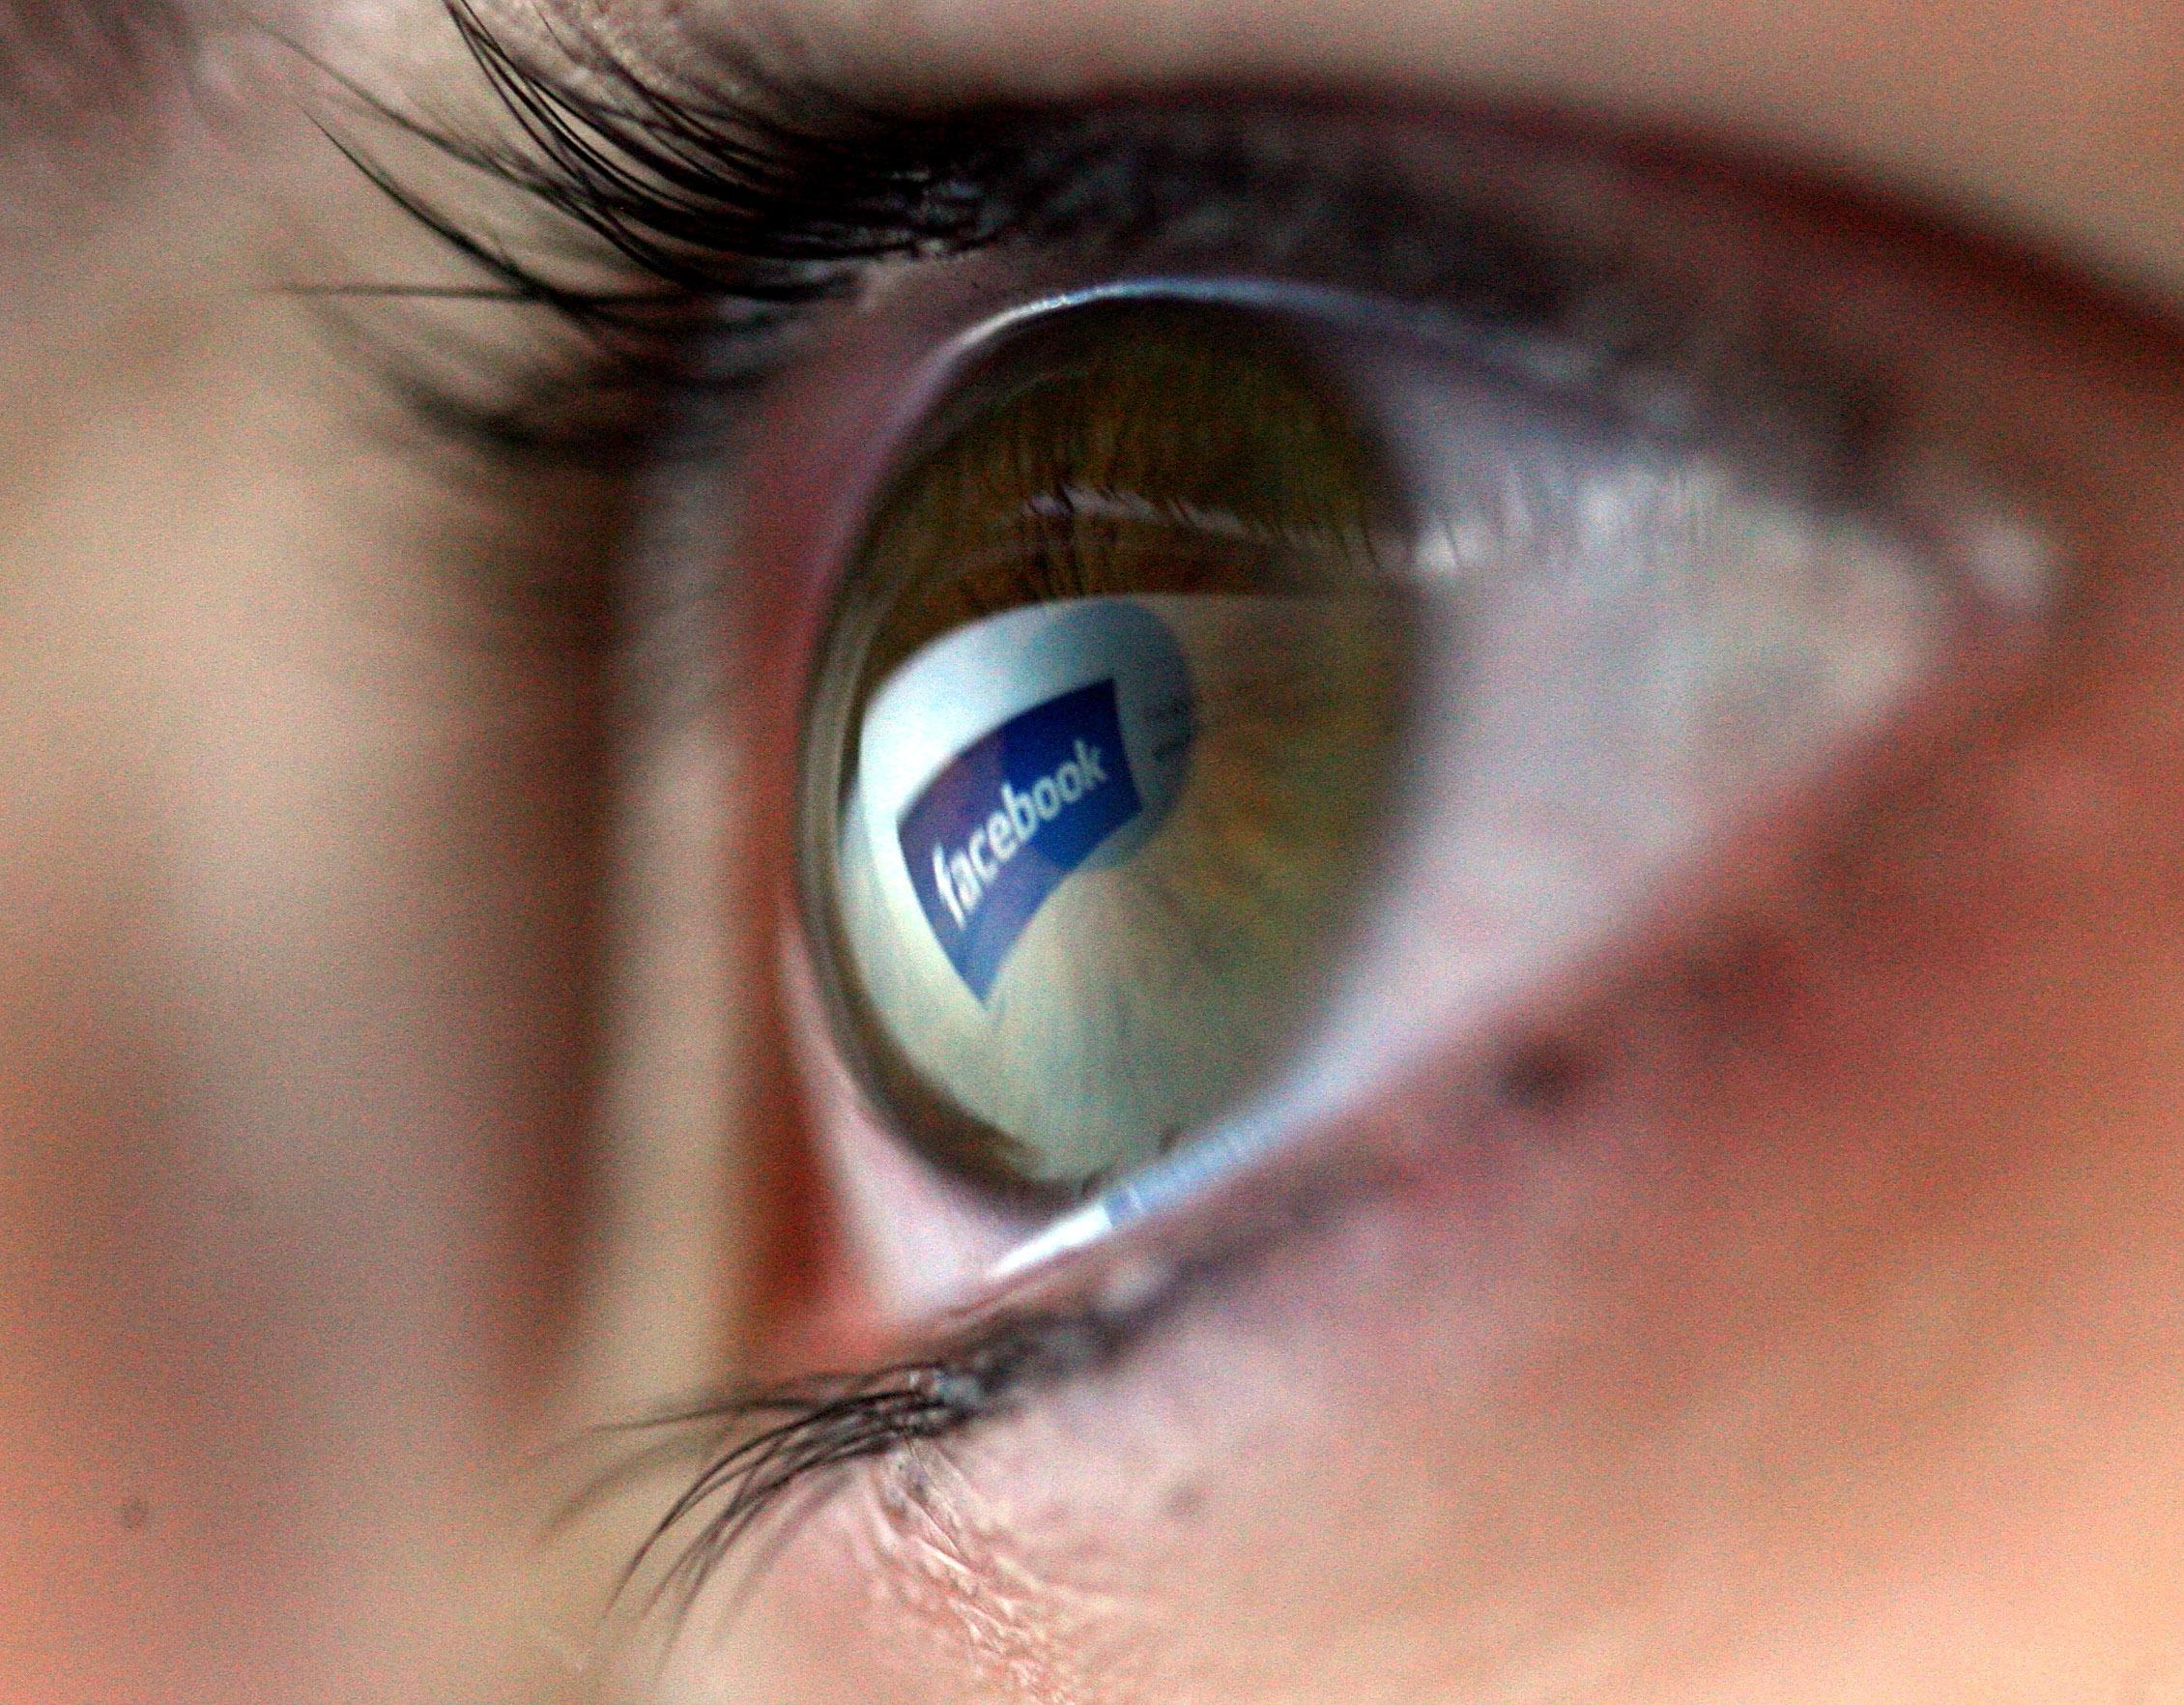 The NSA Is Using Facebook to Hack Into Your Computer